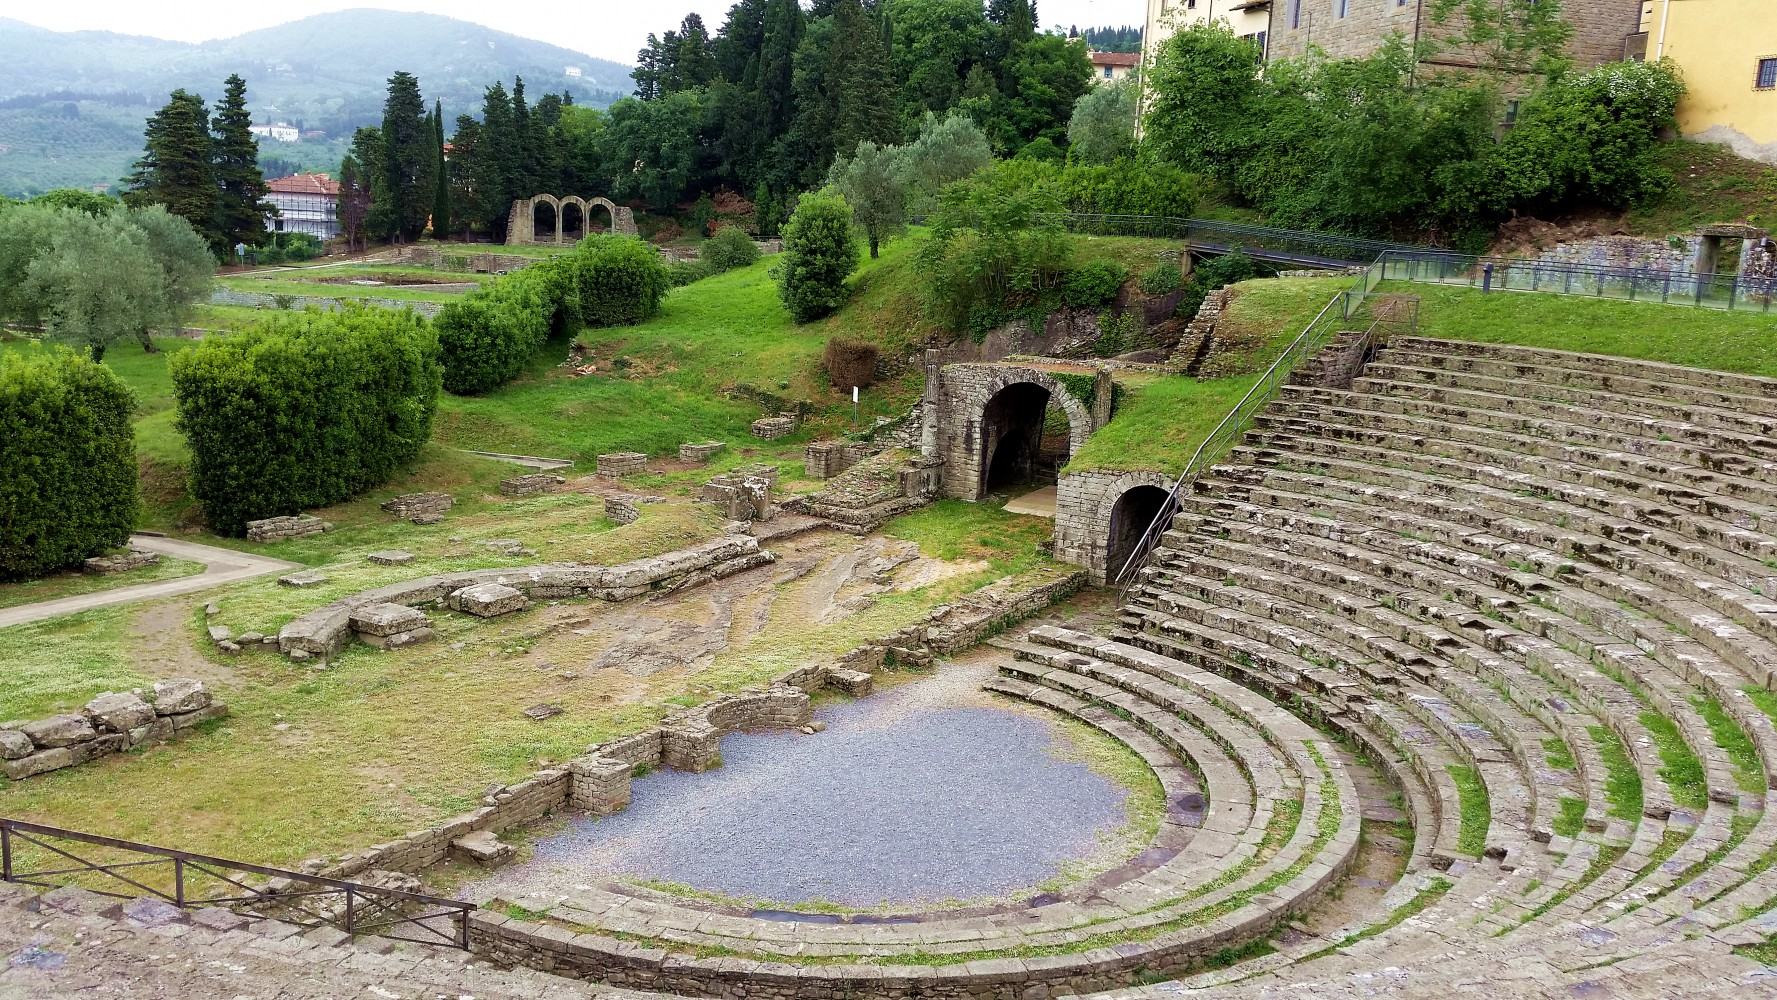 FIESOLE AND THE ARCHAEOLOGICAL AREA